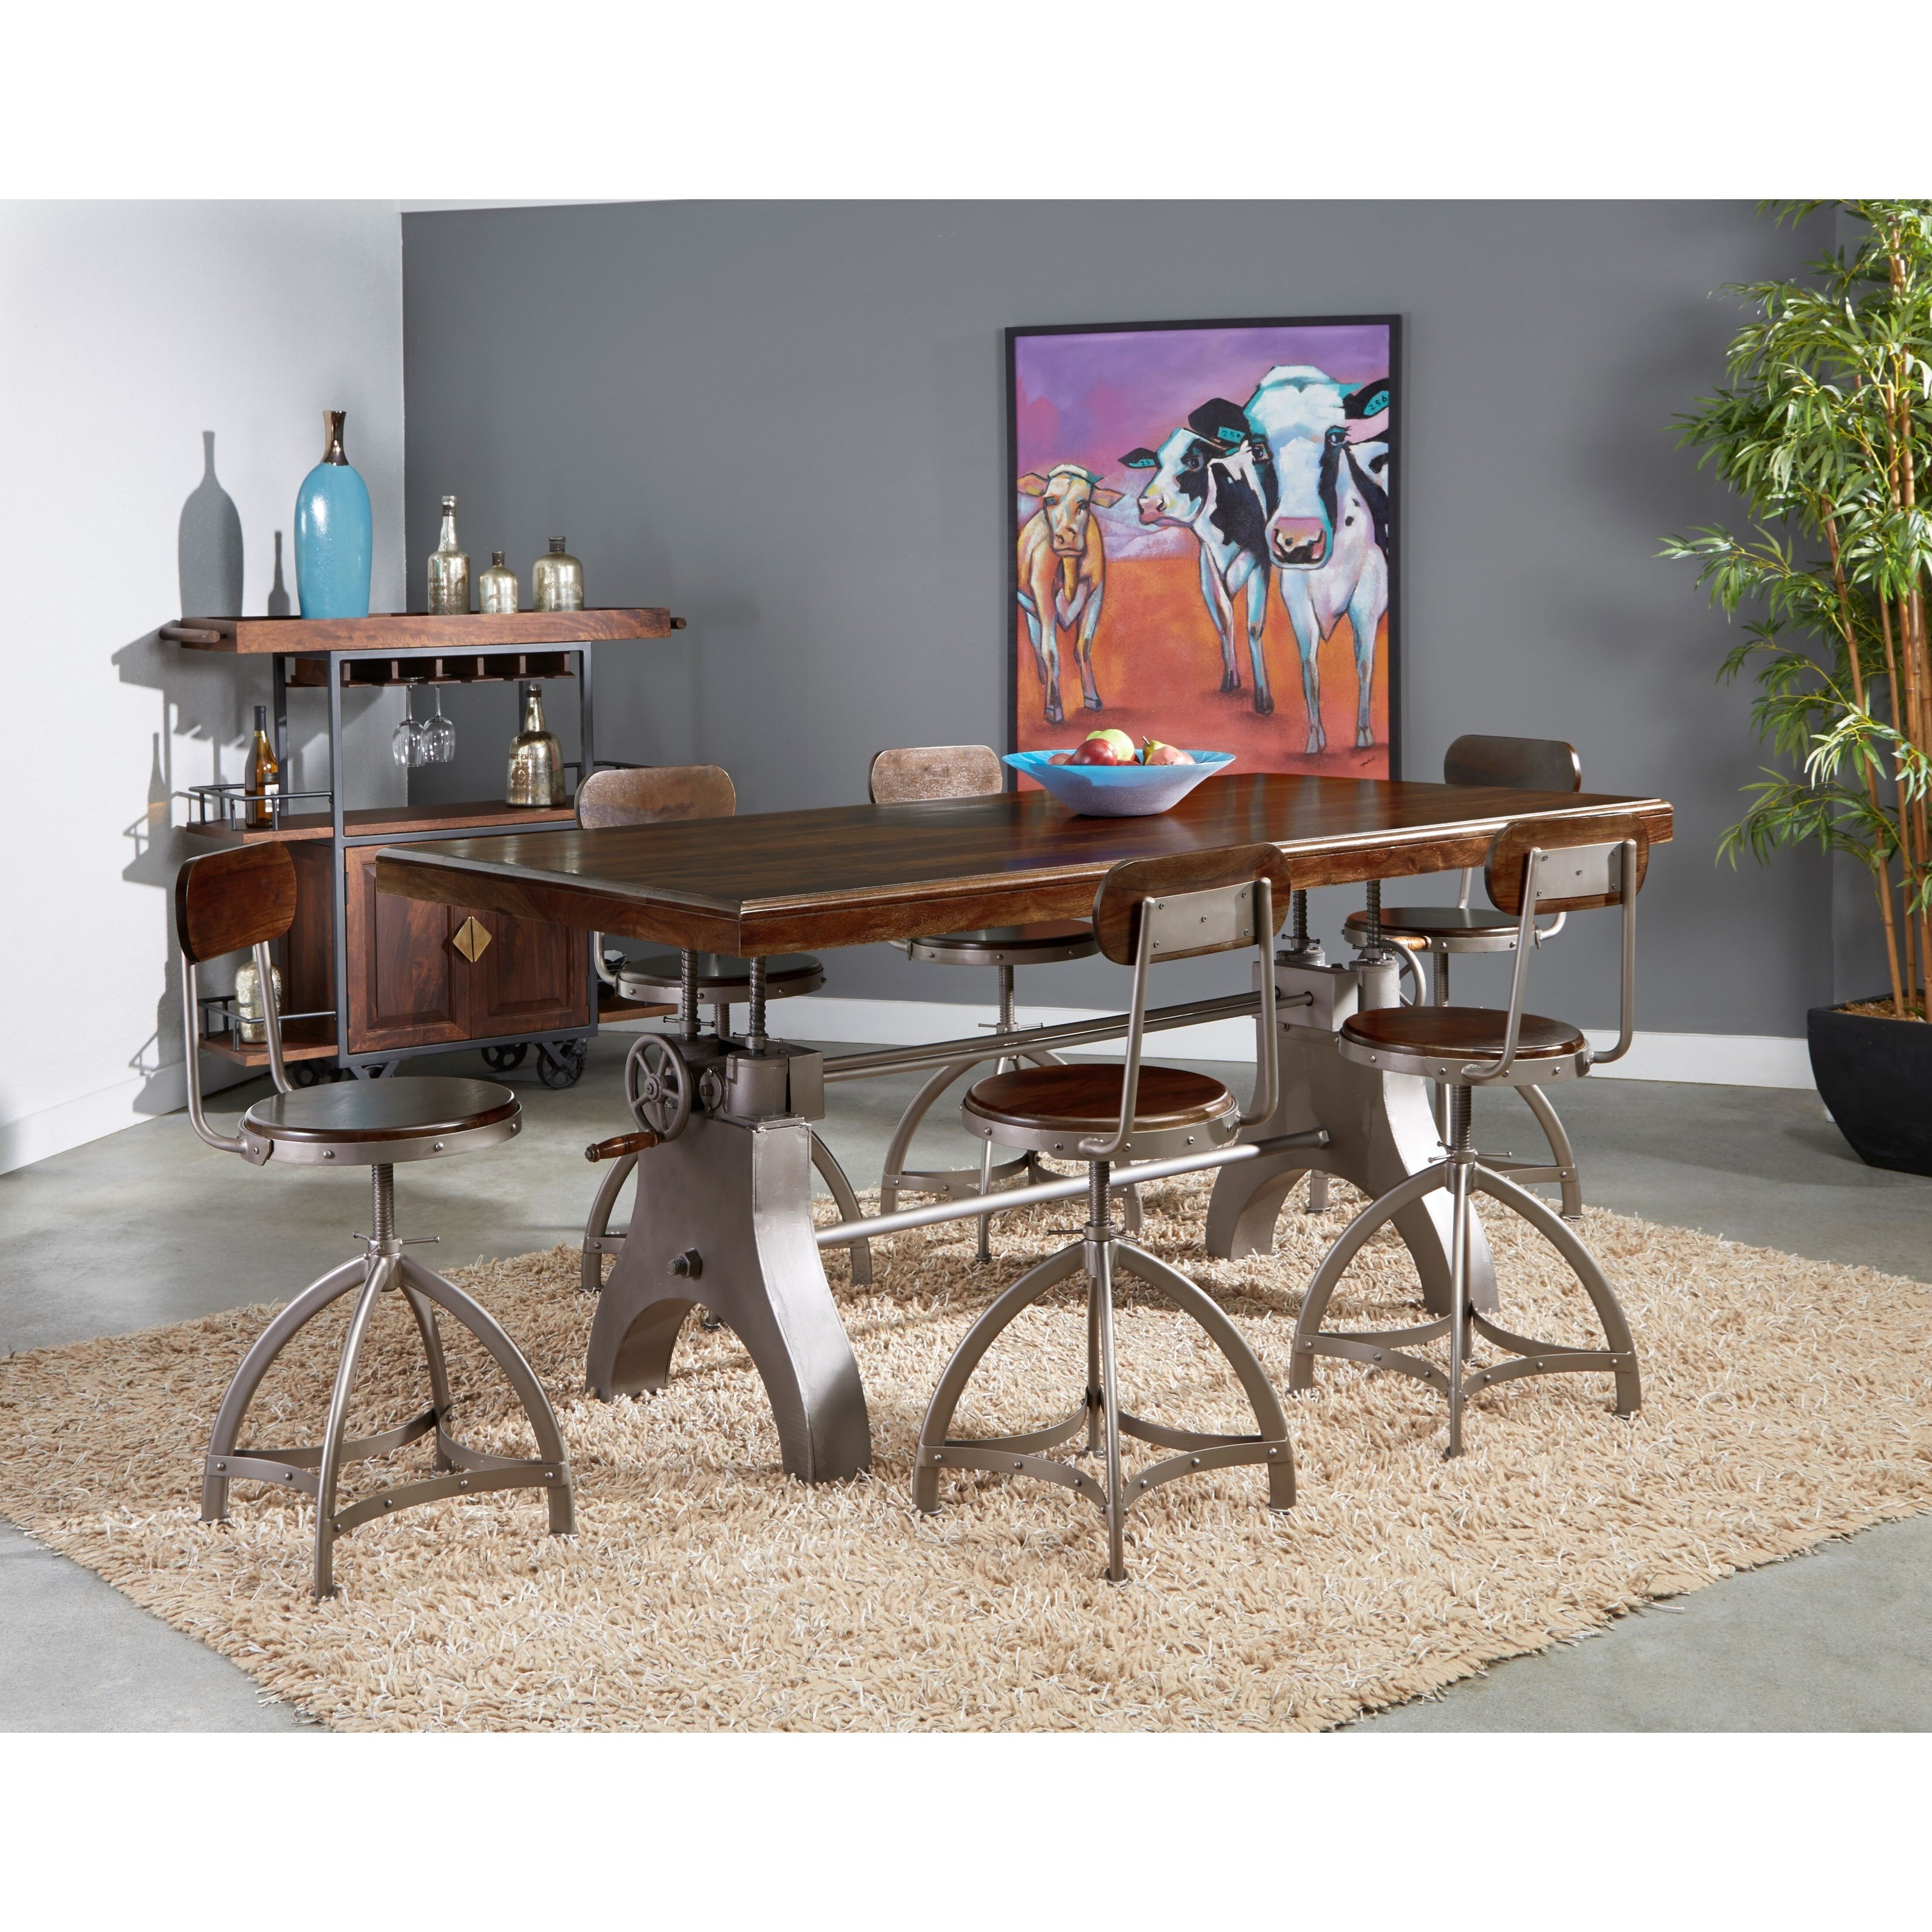 Tacoma 7-Piece Pub Dining Table and Chair Set by C2C at Walker's Furniture